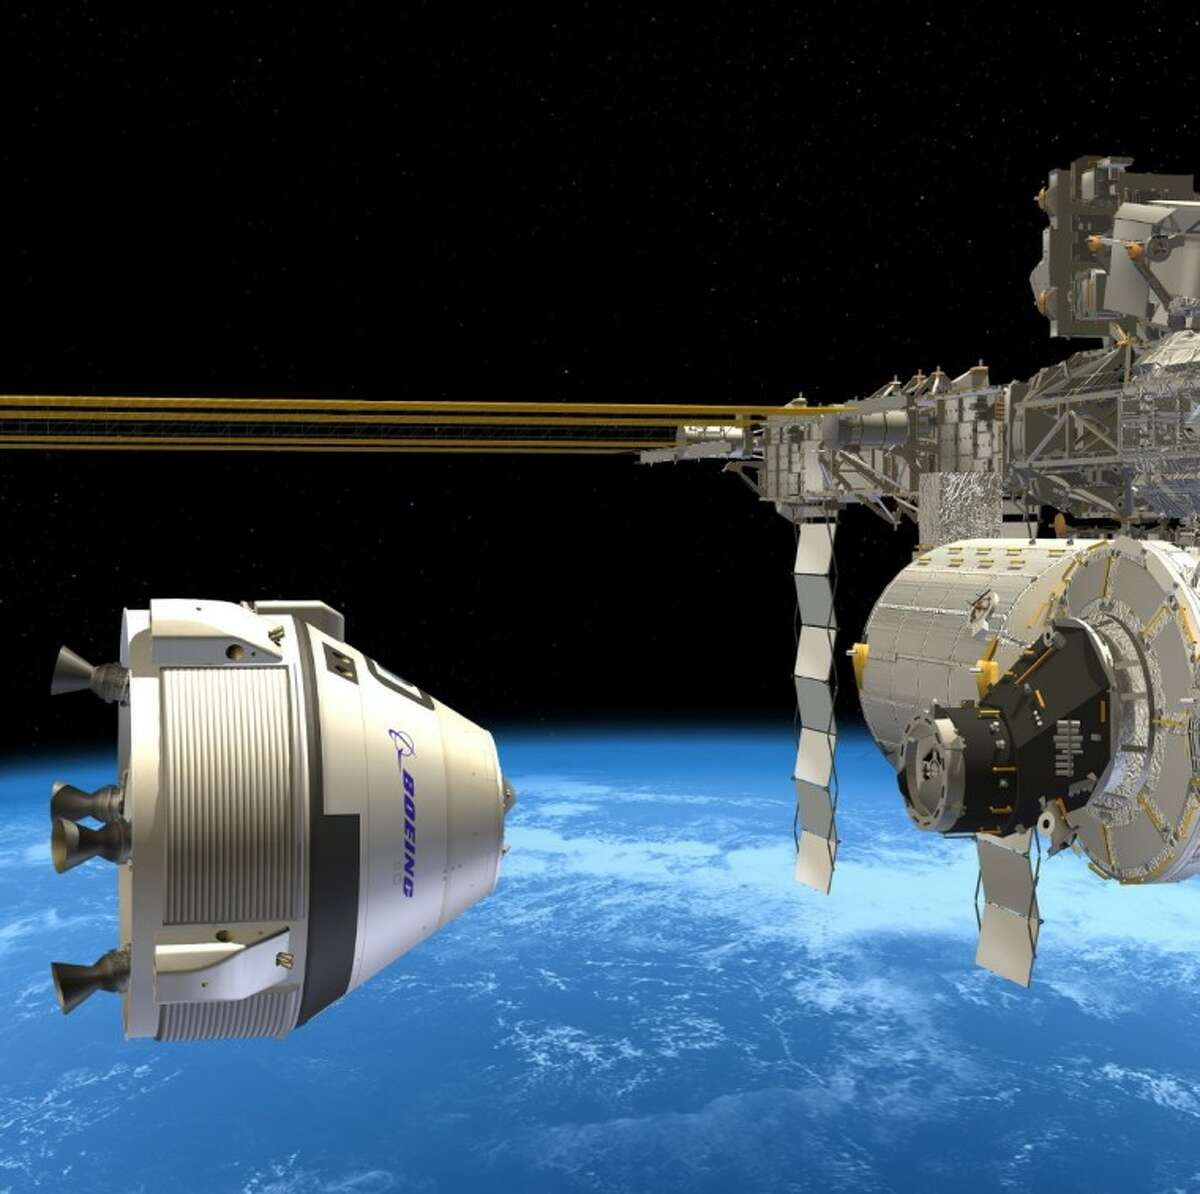 Boeing is working to develop what could become a true commercial space transportation system -- a commercial service to take crew to the International Space Station and other destinations. Show here is an artist concept of Boeing's Crew Space Transportation -100 spacecraft approaching the International Space Station.